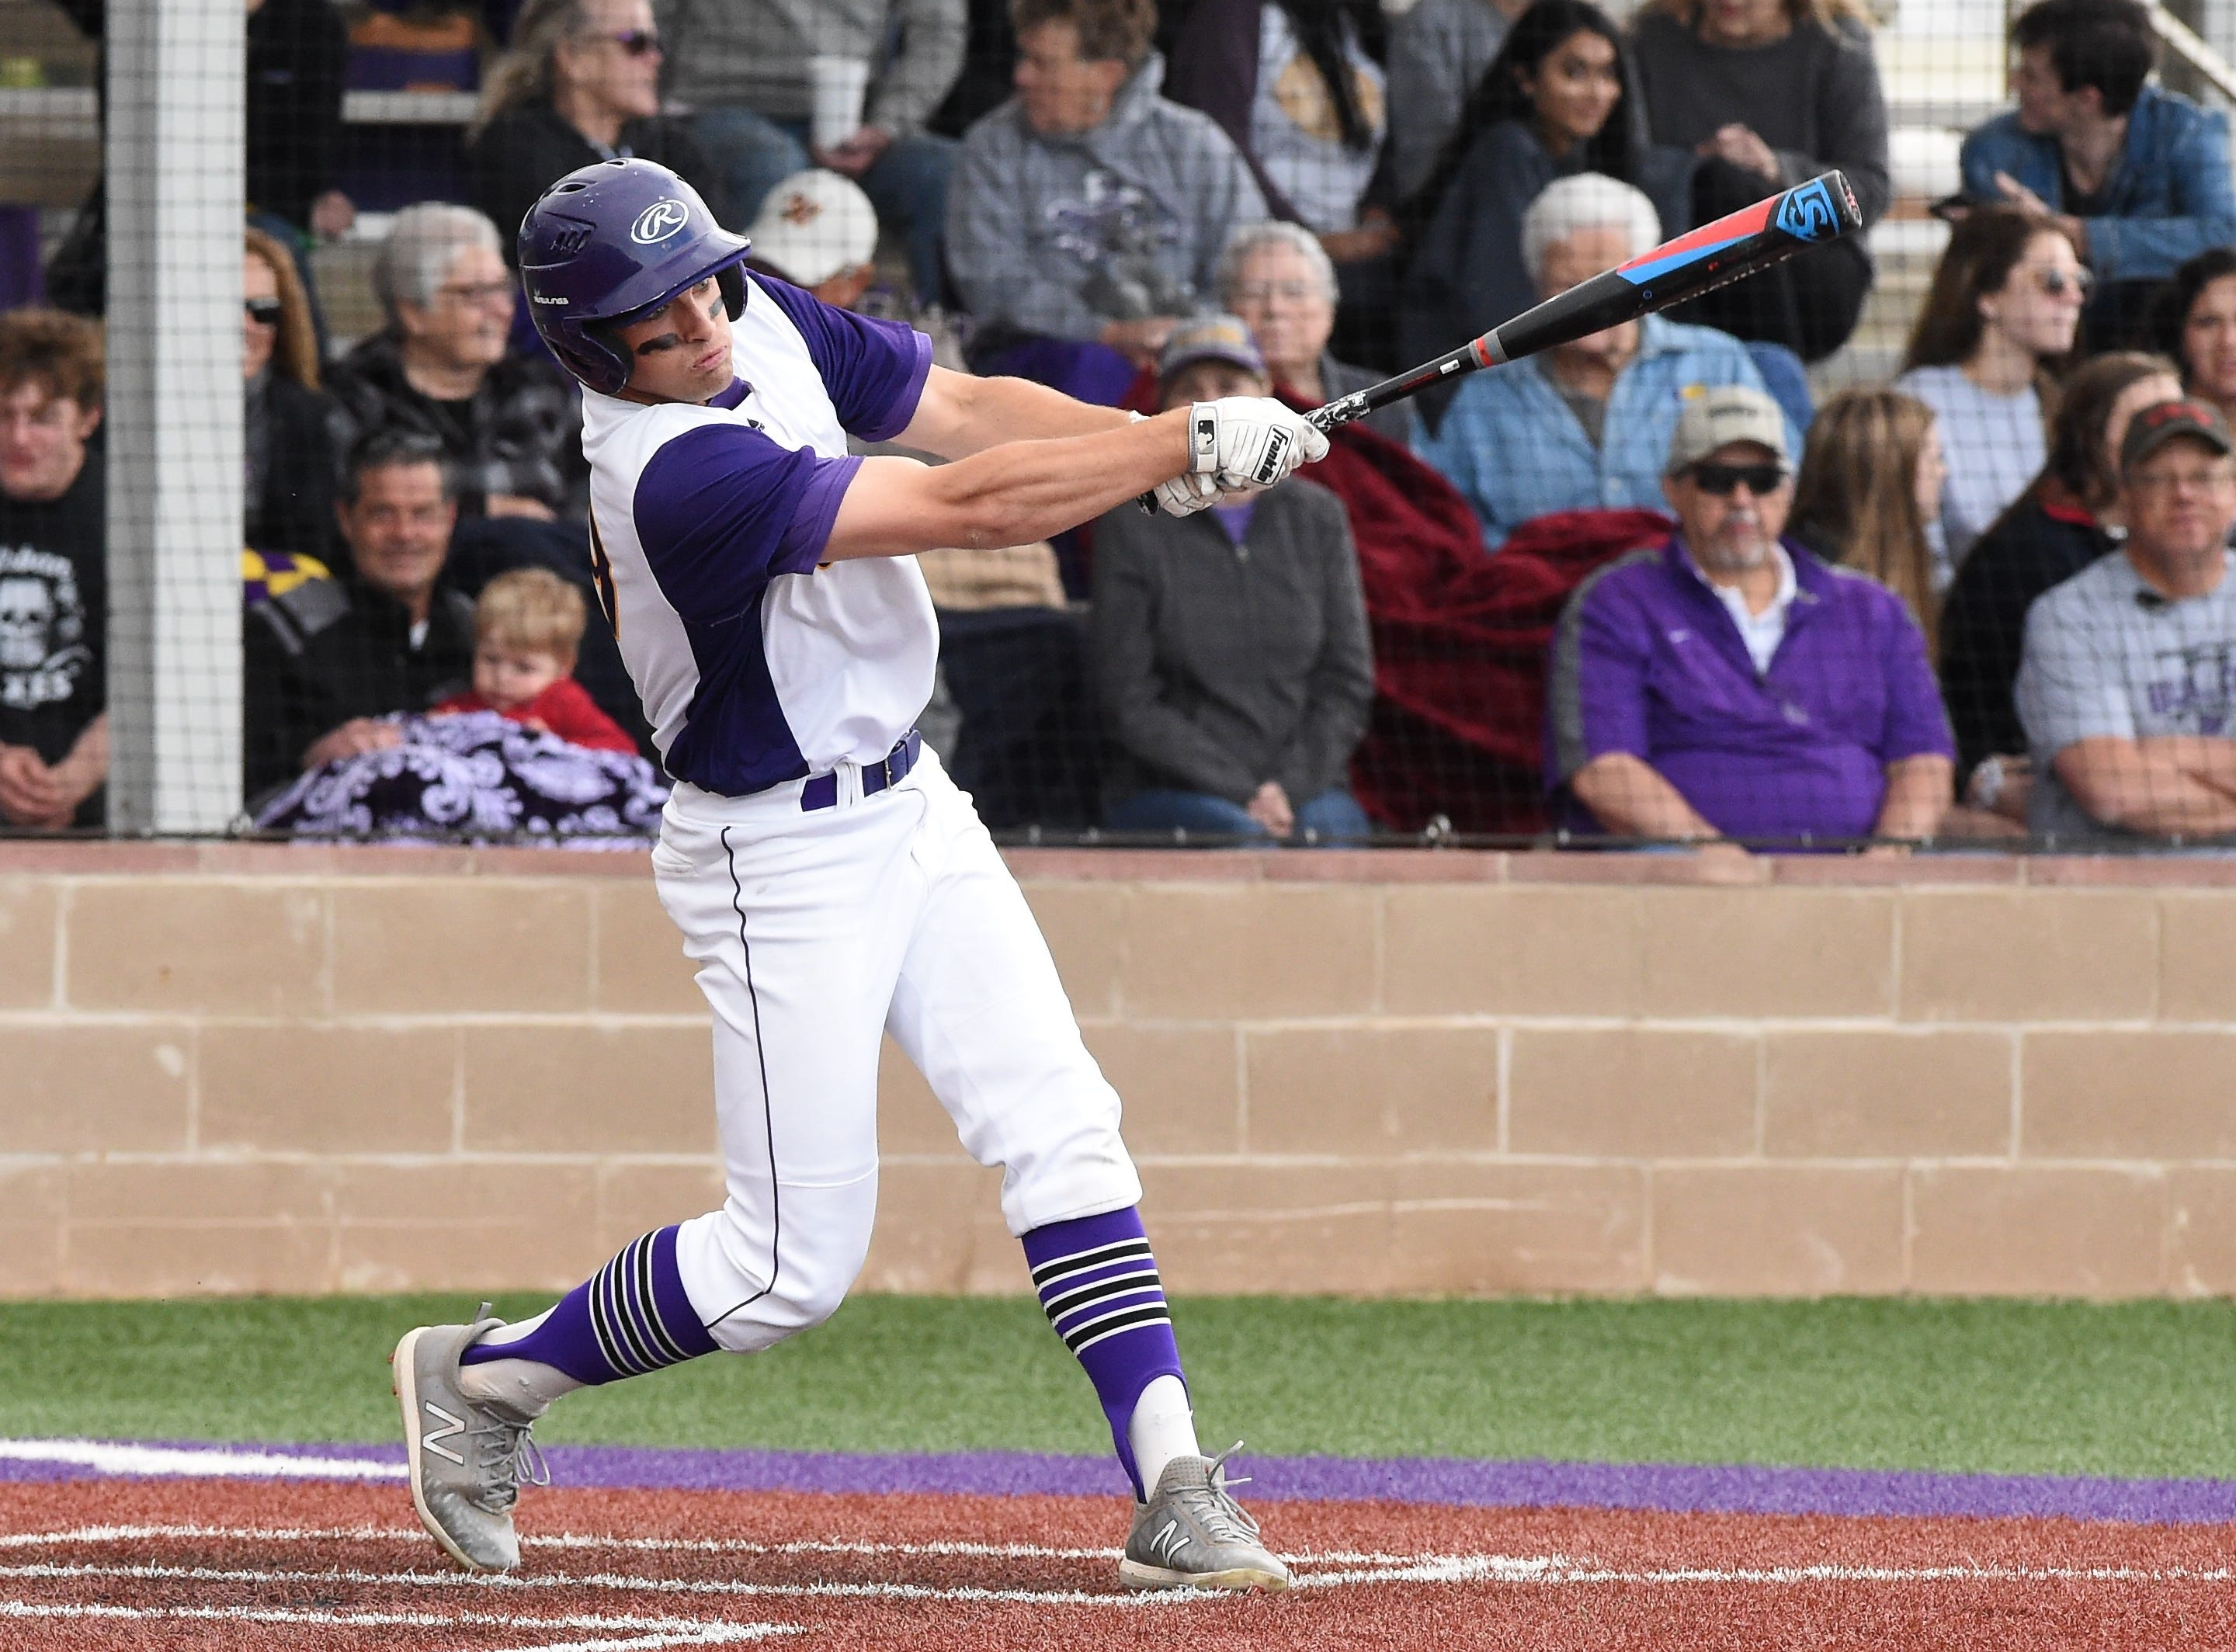 Wylie's Jaxon Hansen (38) follows through on a base hit against Cooper at Bulldog Field on Friday, April 12, 2019. Hansen helped the Bulldogs to a 4-3 win.